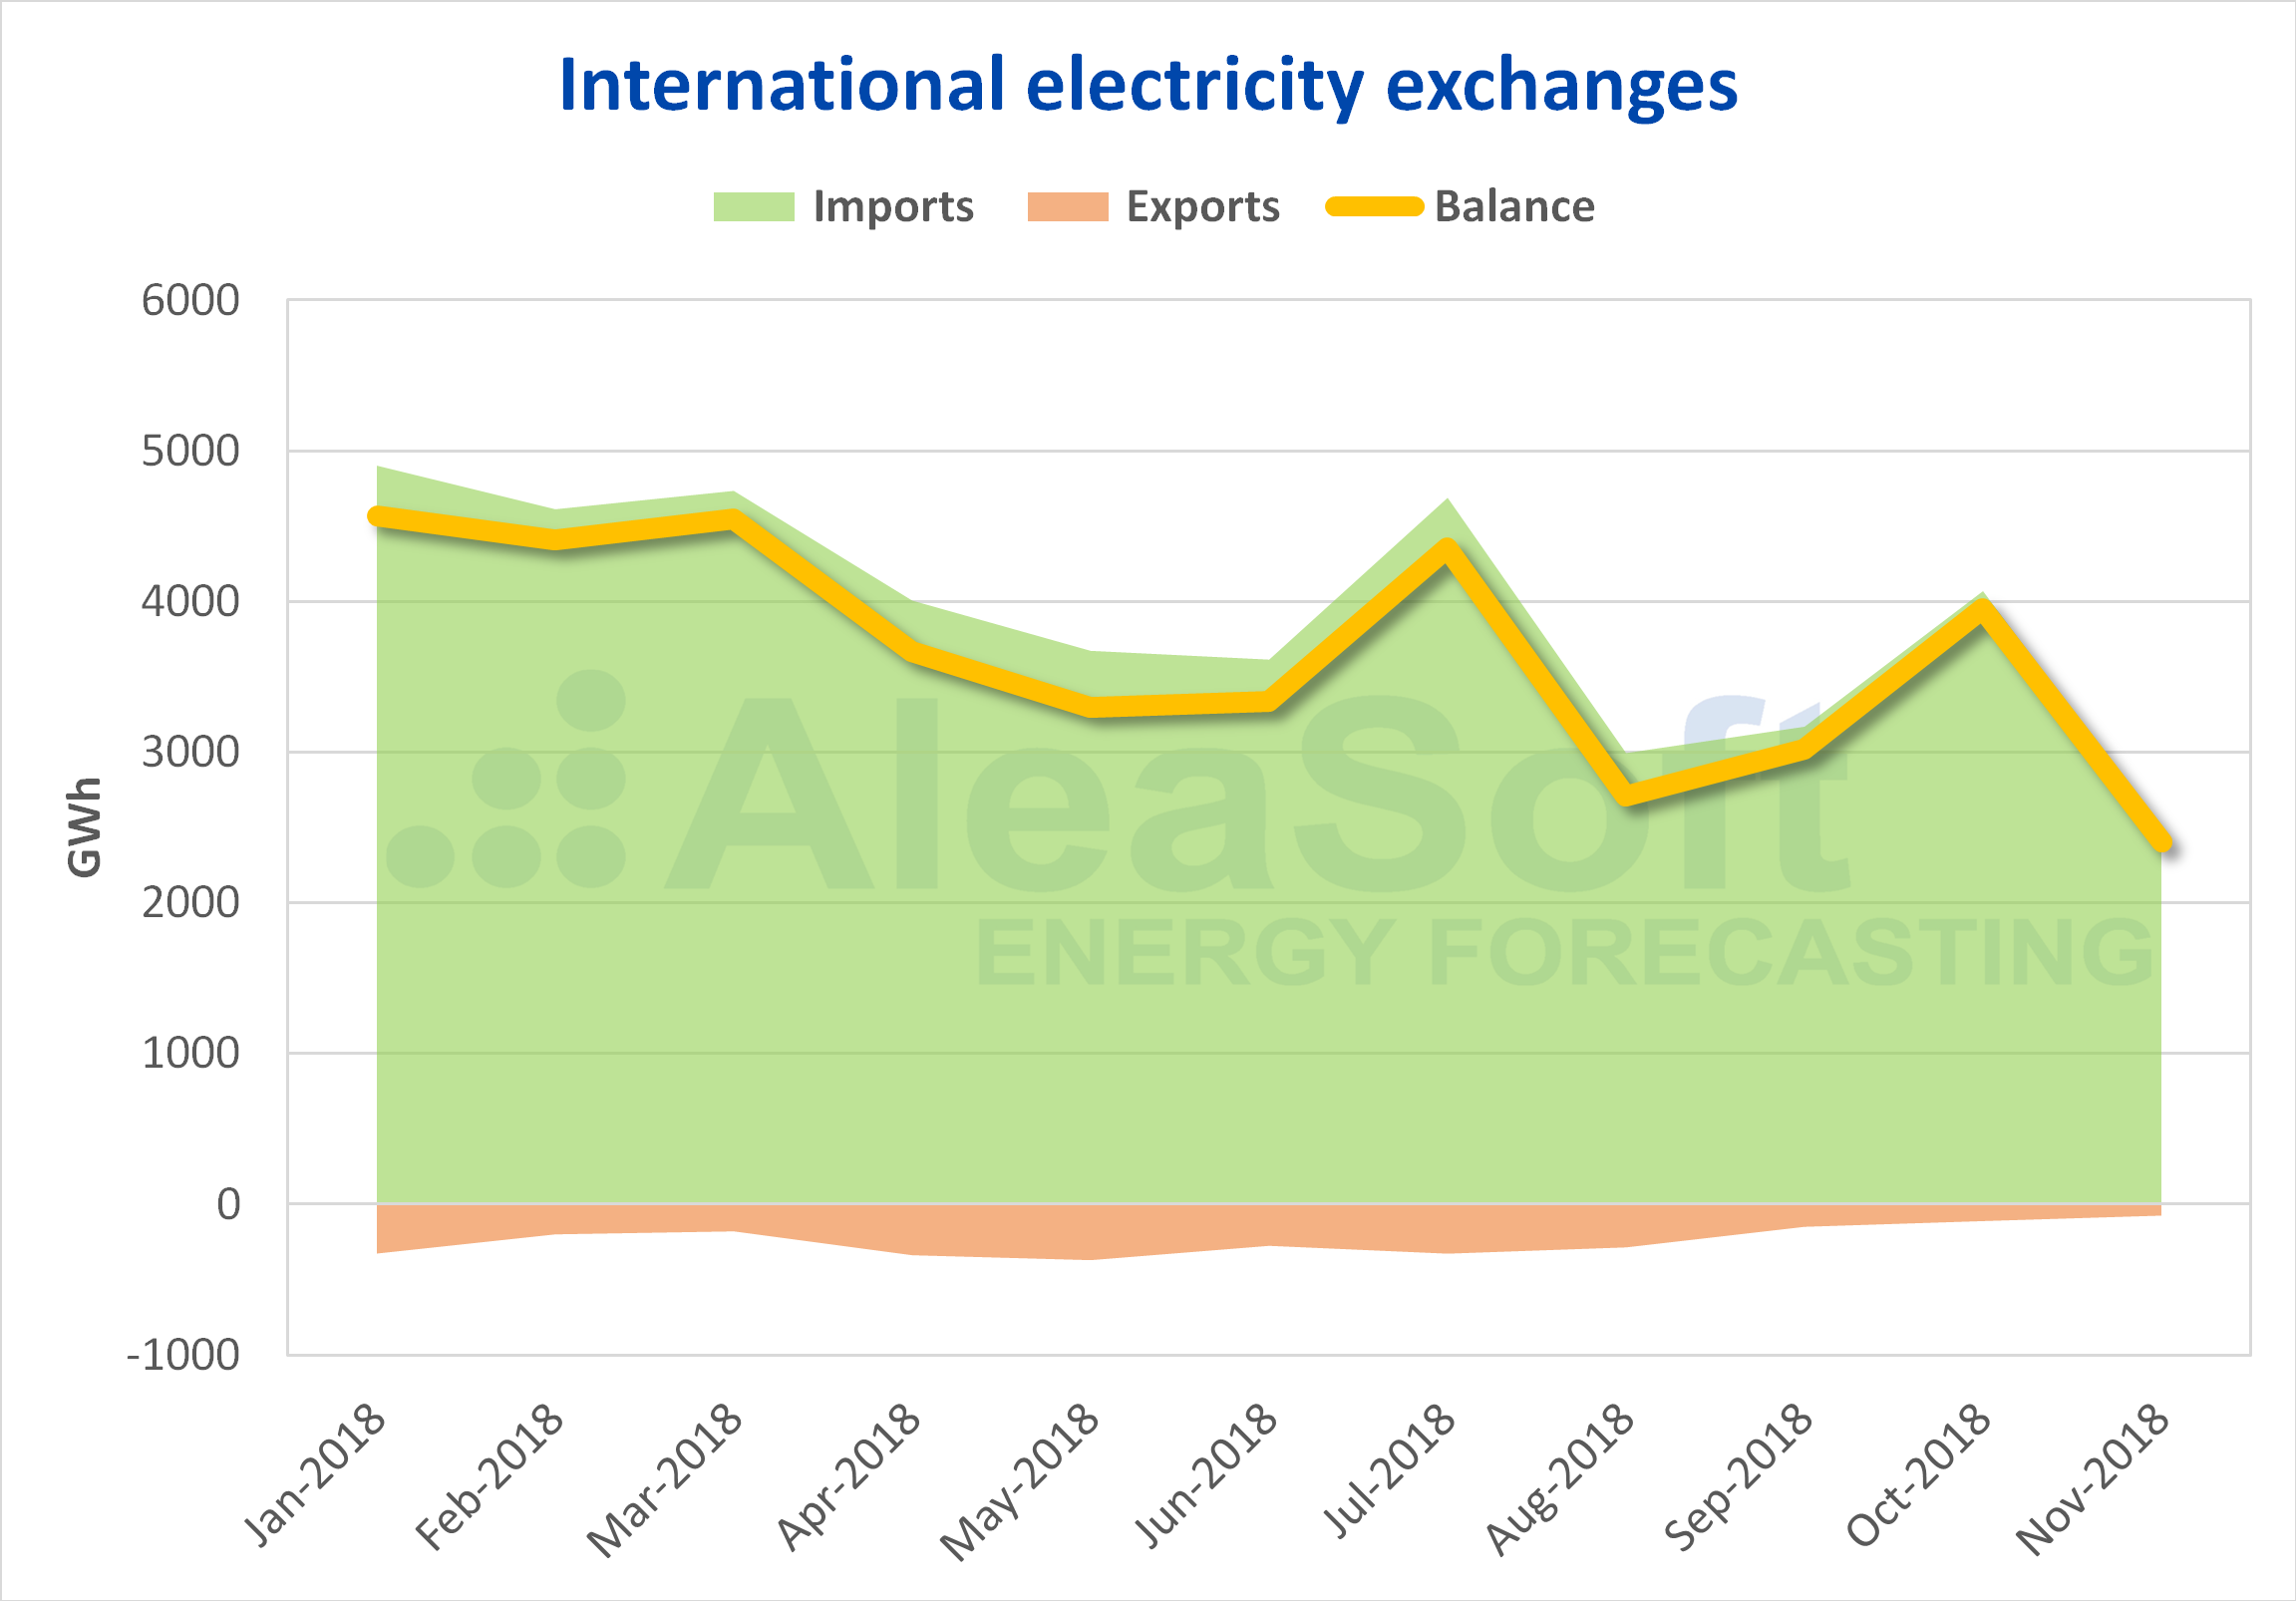 AleaSoft - International electricity exchanges Italy